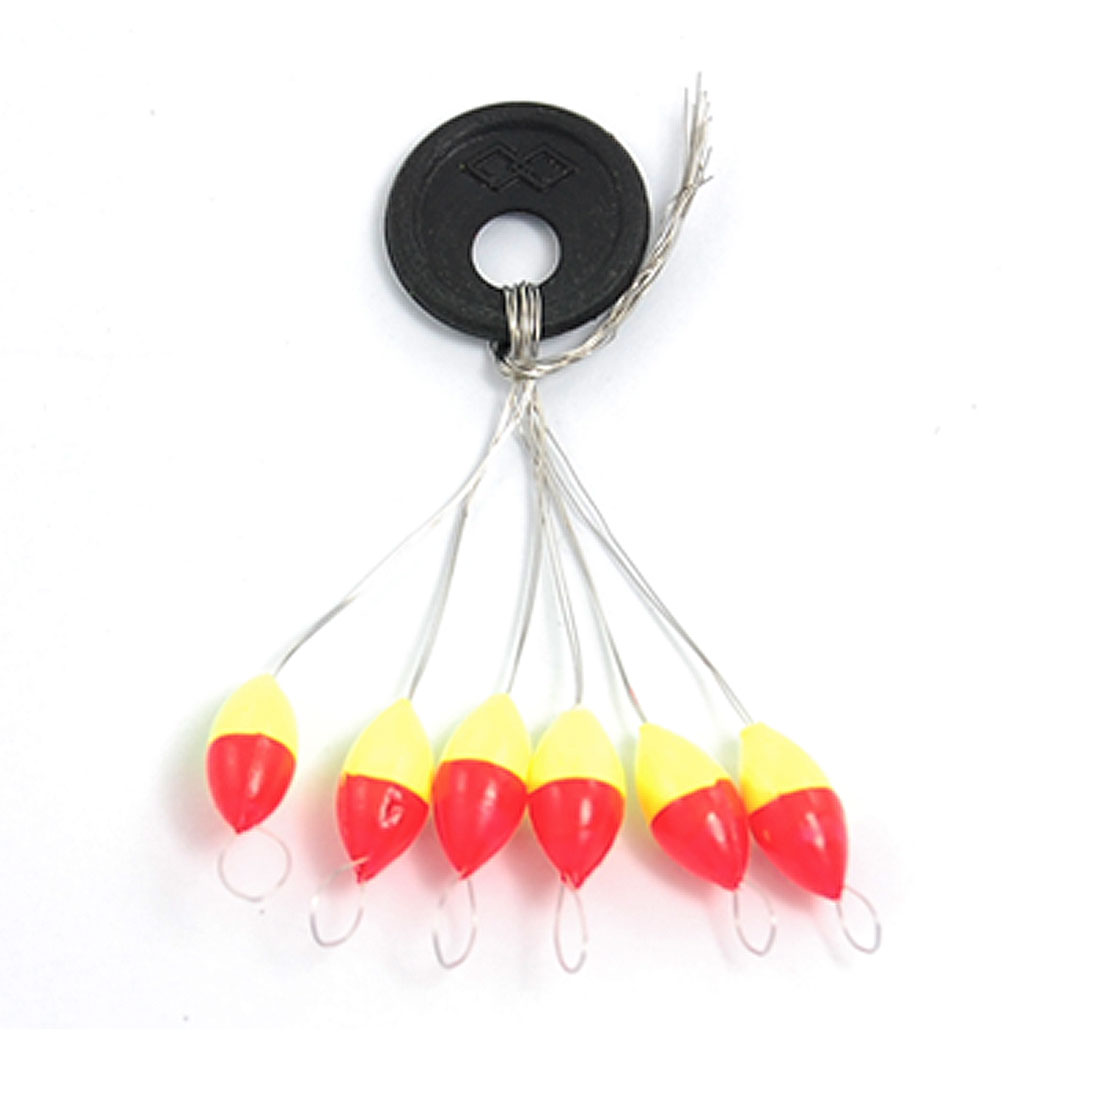 3 Pcs Oval Shaped 6 in 1 Red Yellow Plastic Fishing Floater Size 2